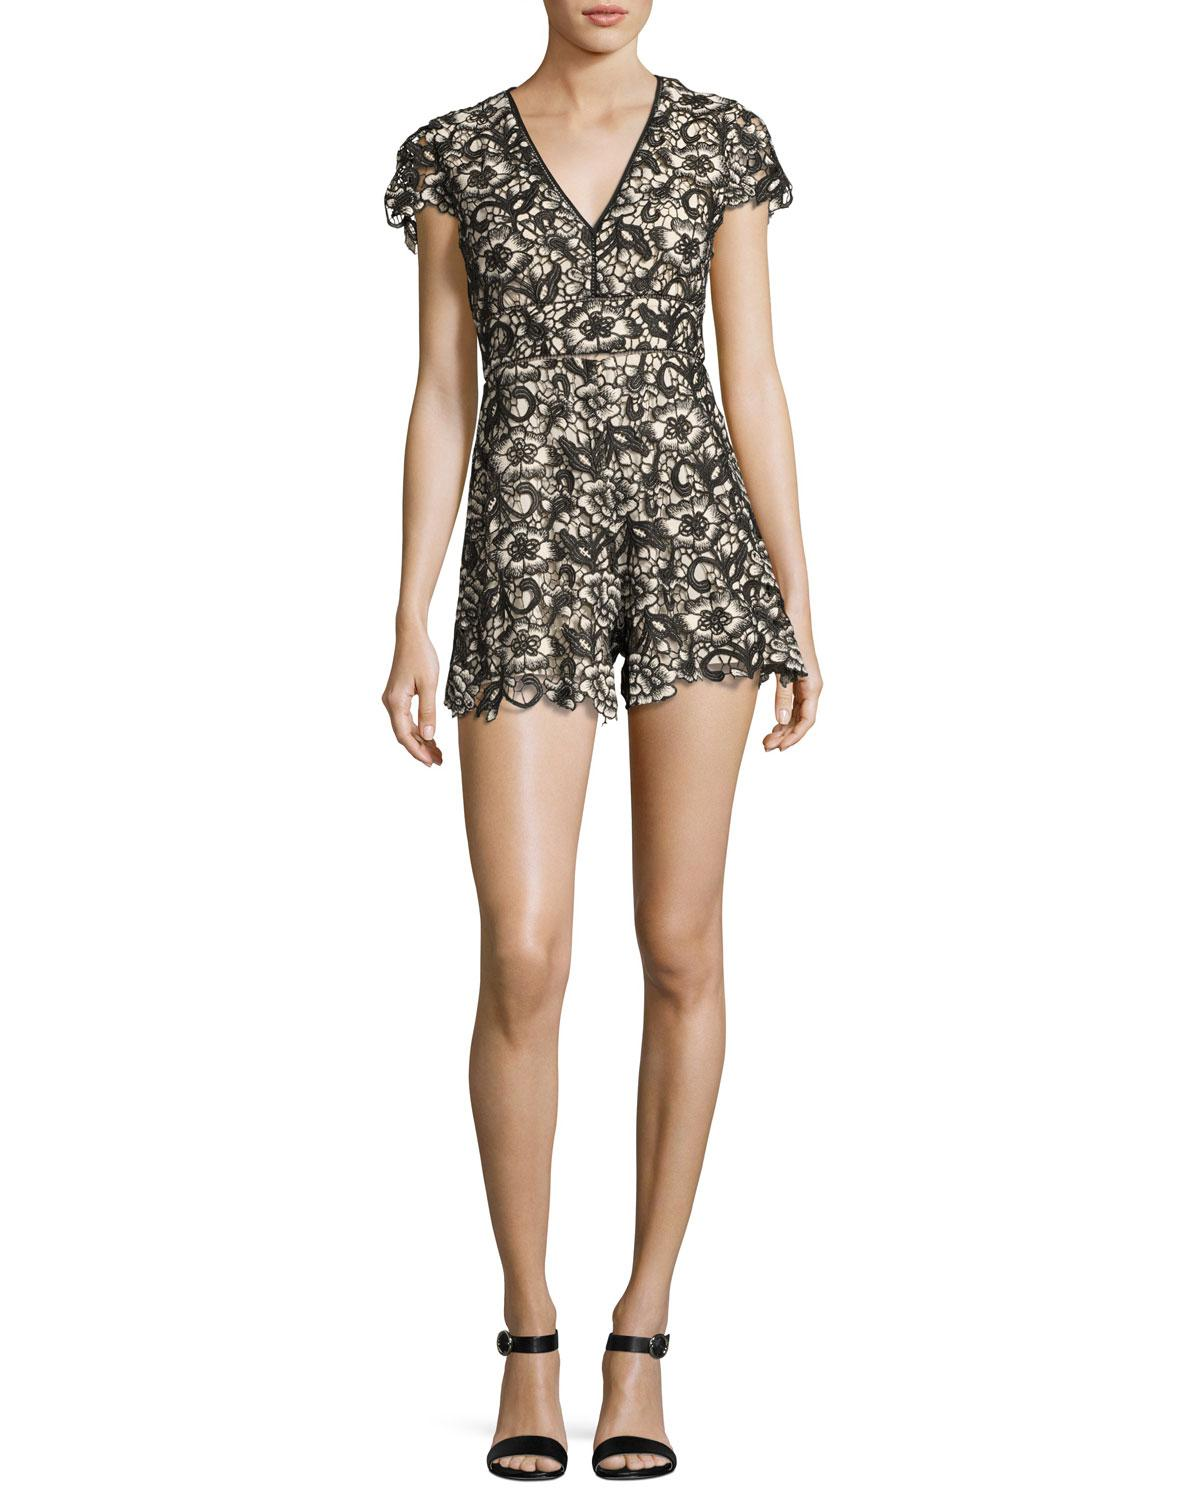 a69986521f Lyst - Alice + Olivia Tinsley V-neck Lace Romper in Black